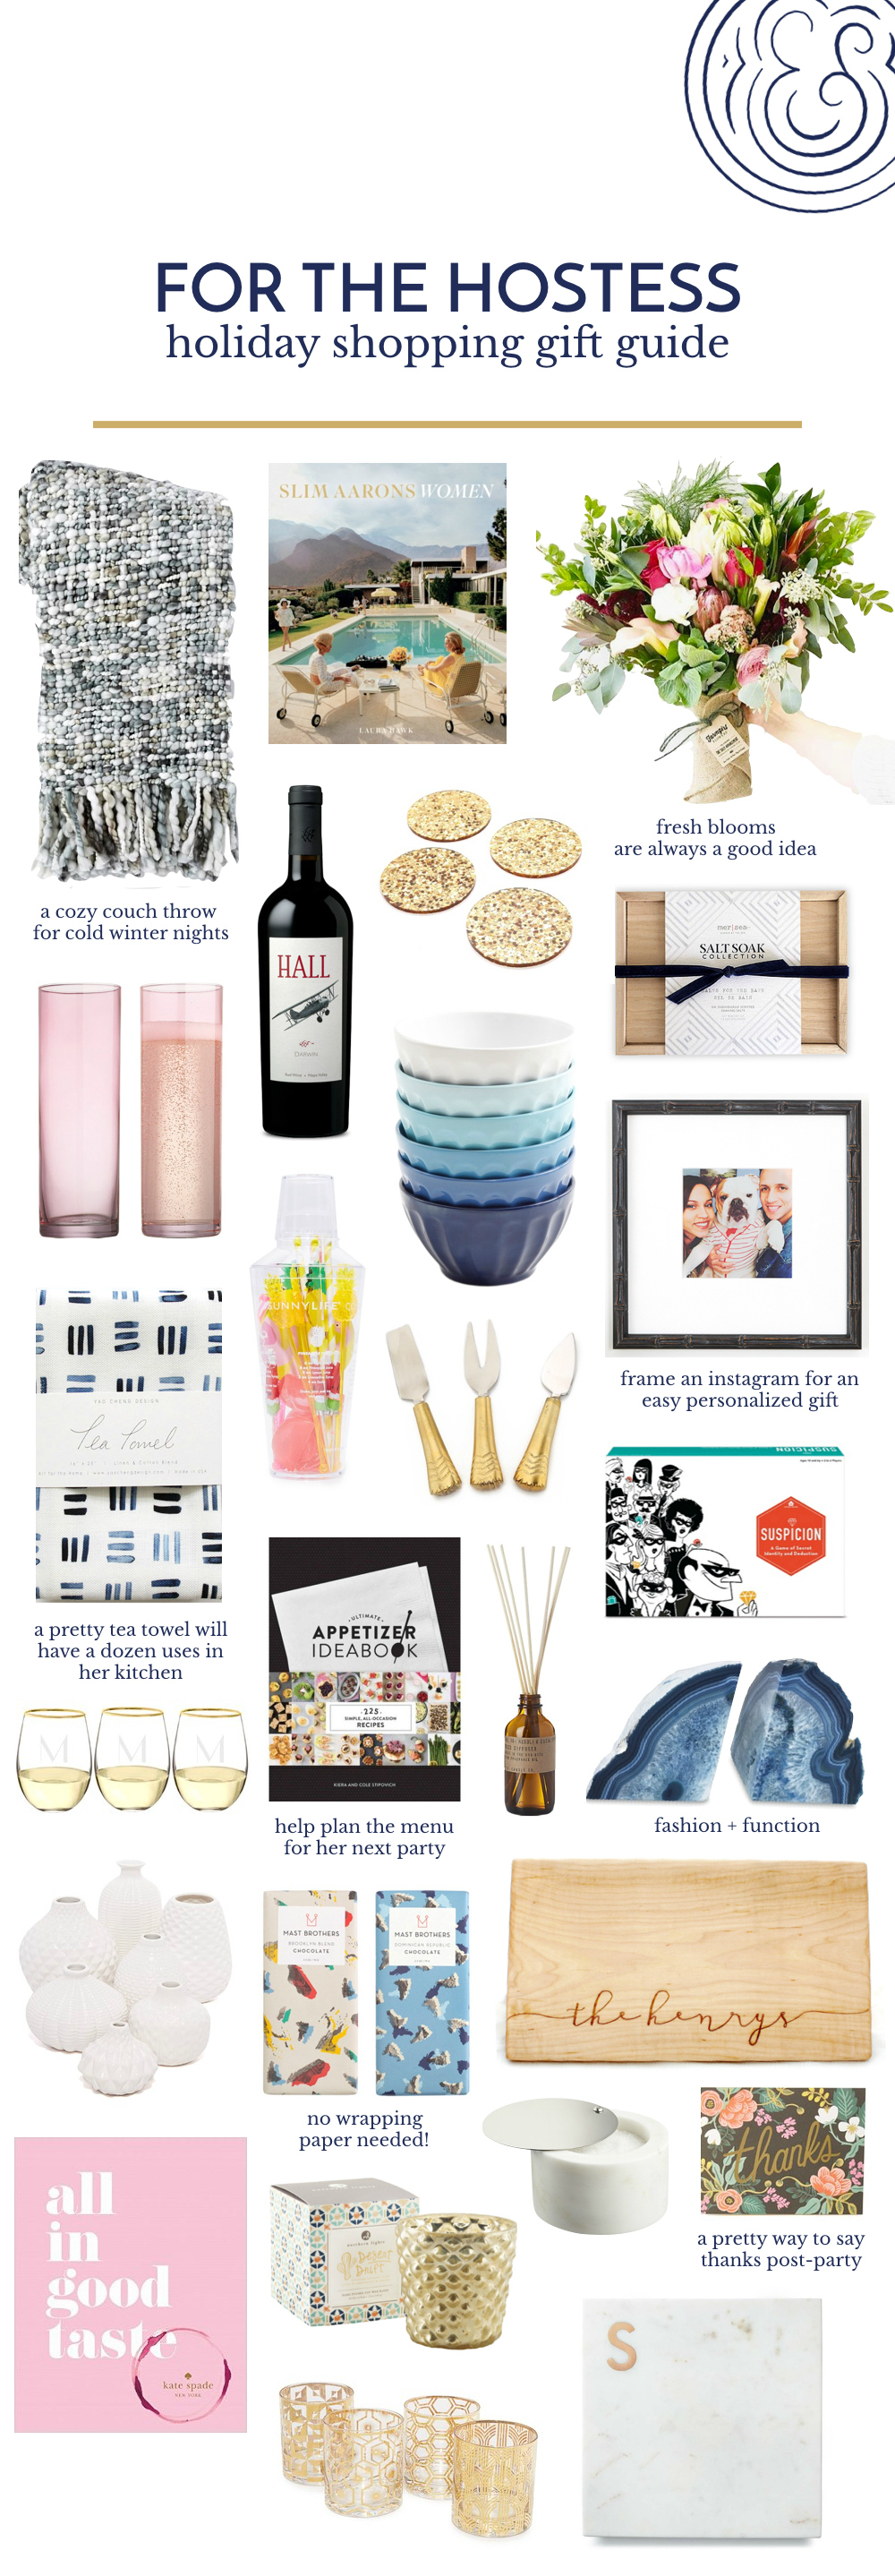 The Best Holiday Gift Ideas for the Hostess.